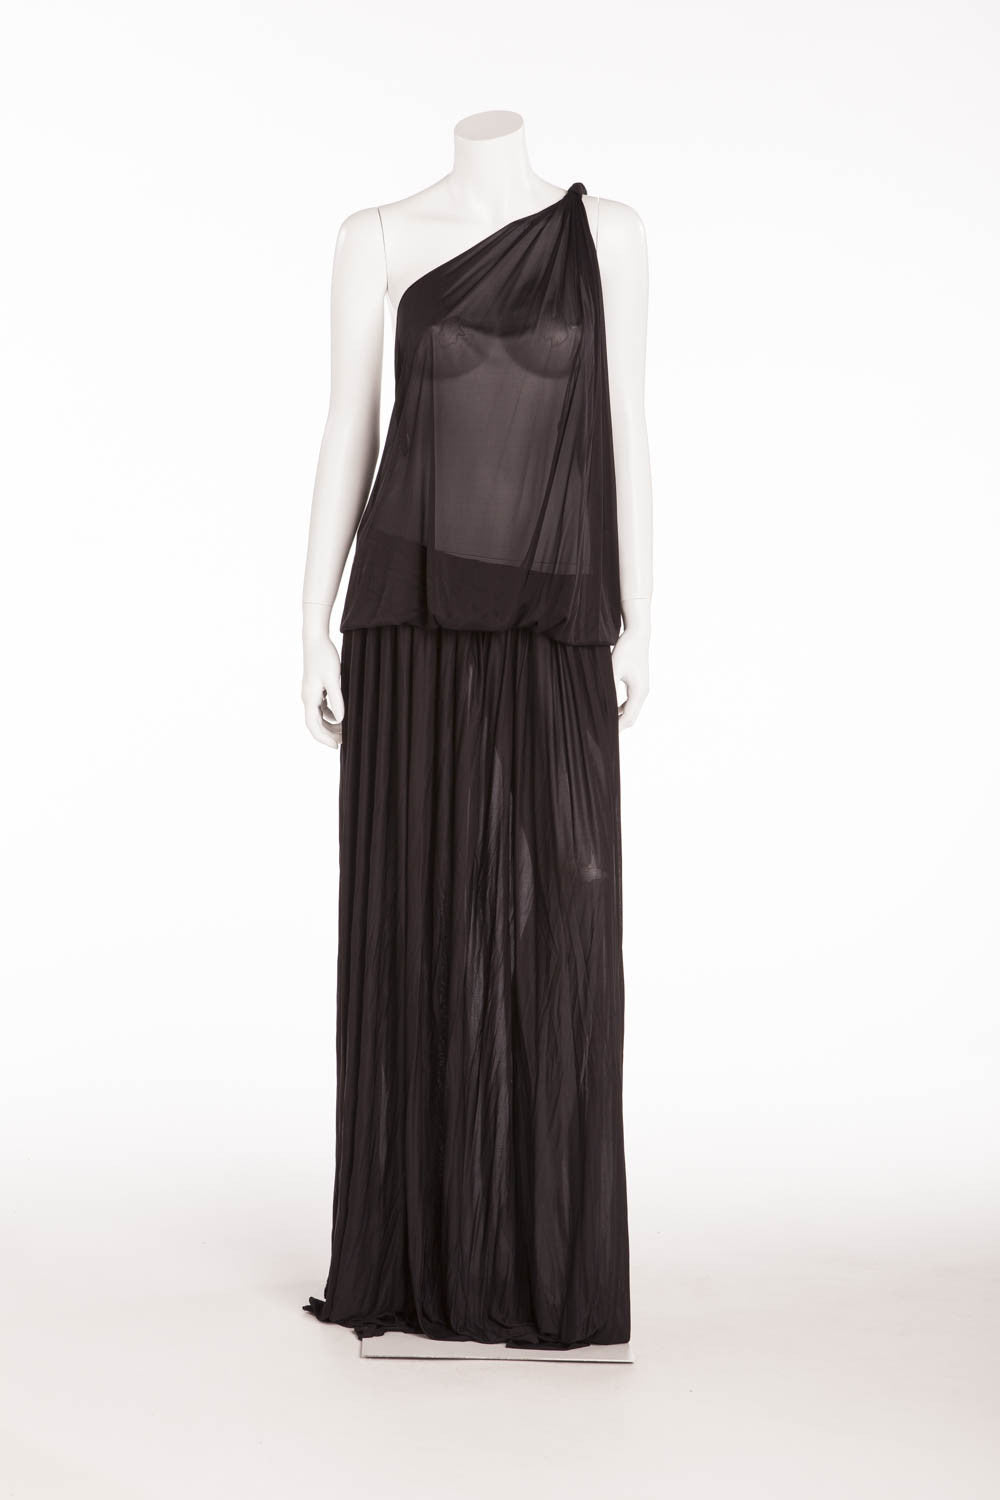 Emilio Pucci - BN Long Black Sheer One Shoulder Dress - IT 40